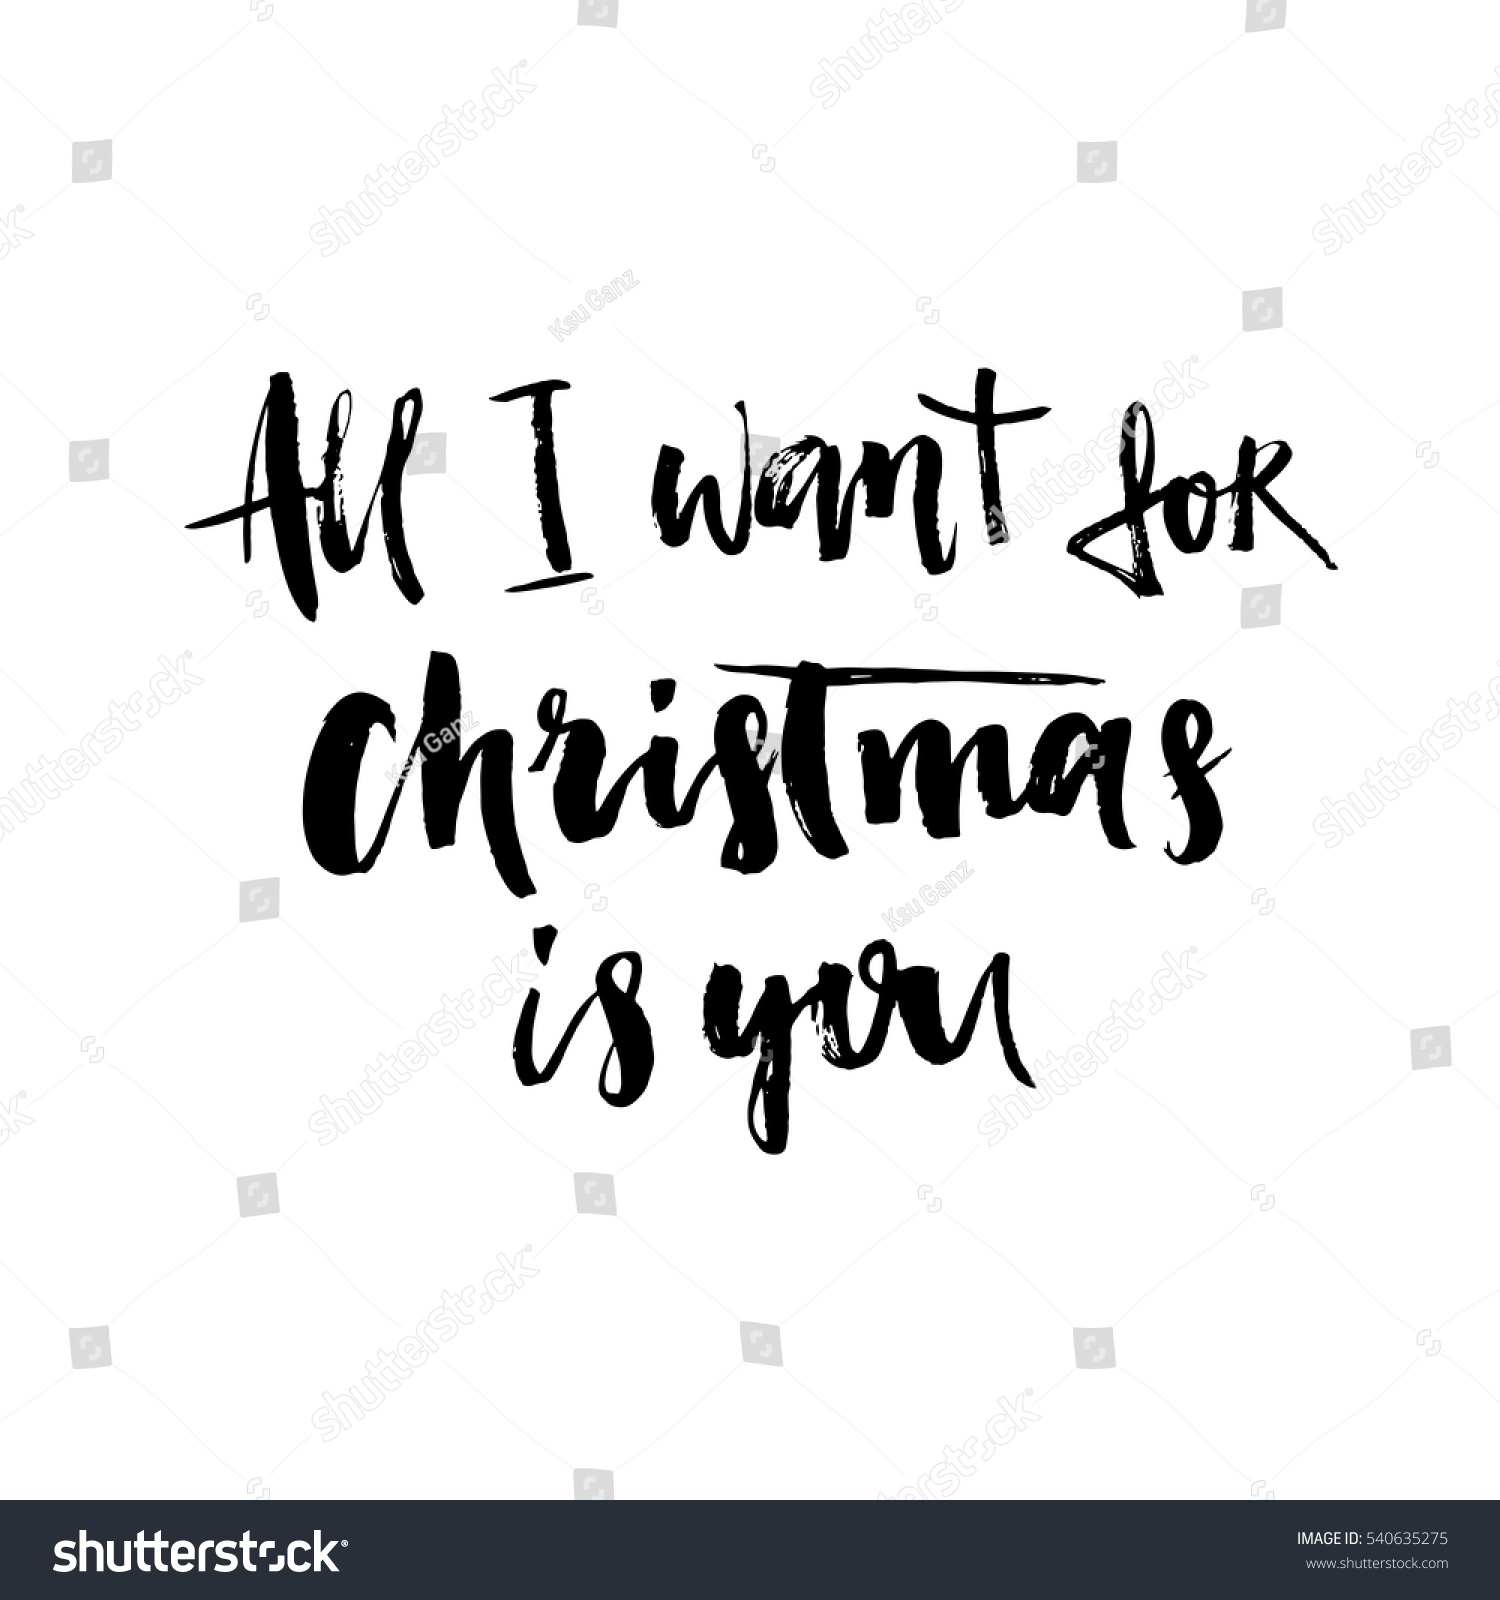 All Want Christmas You Hand Drawn Stock Vector (Royalty Free ...